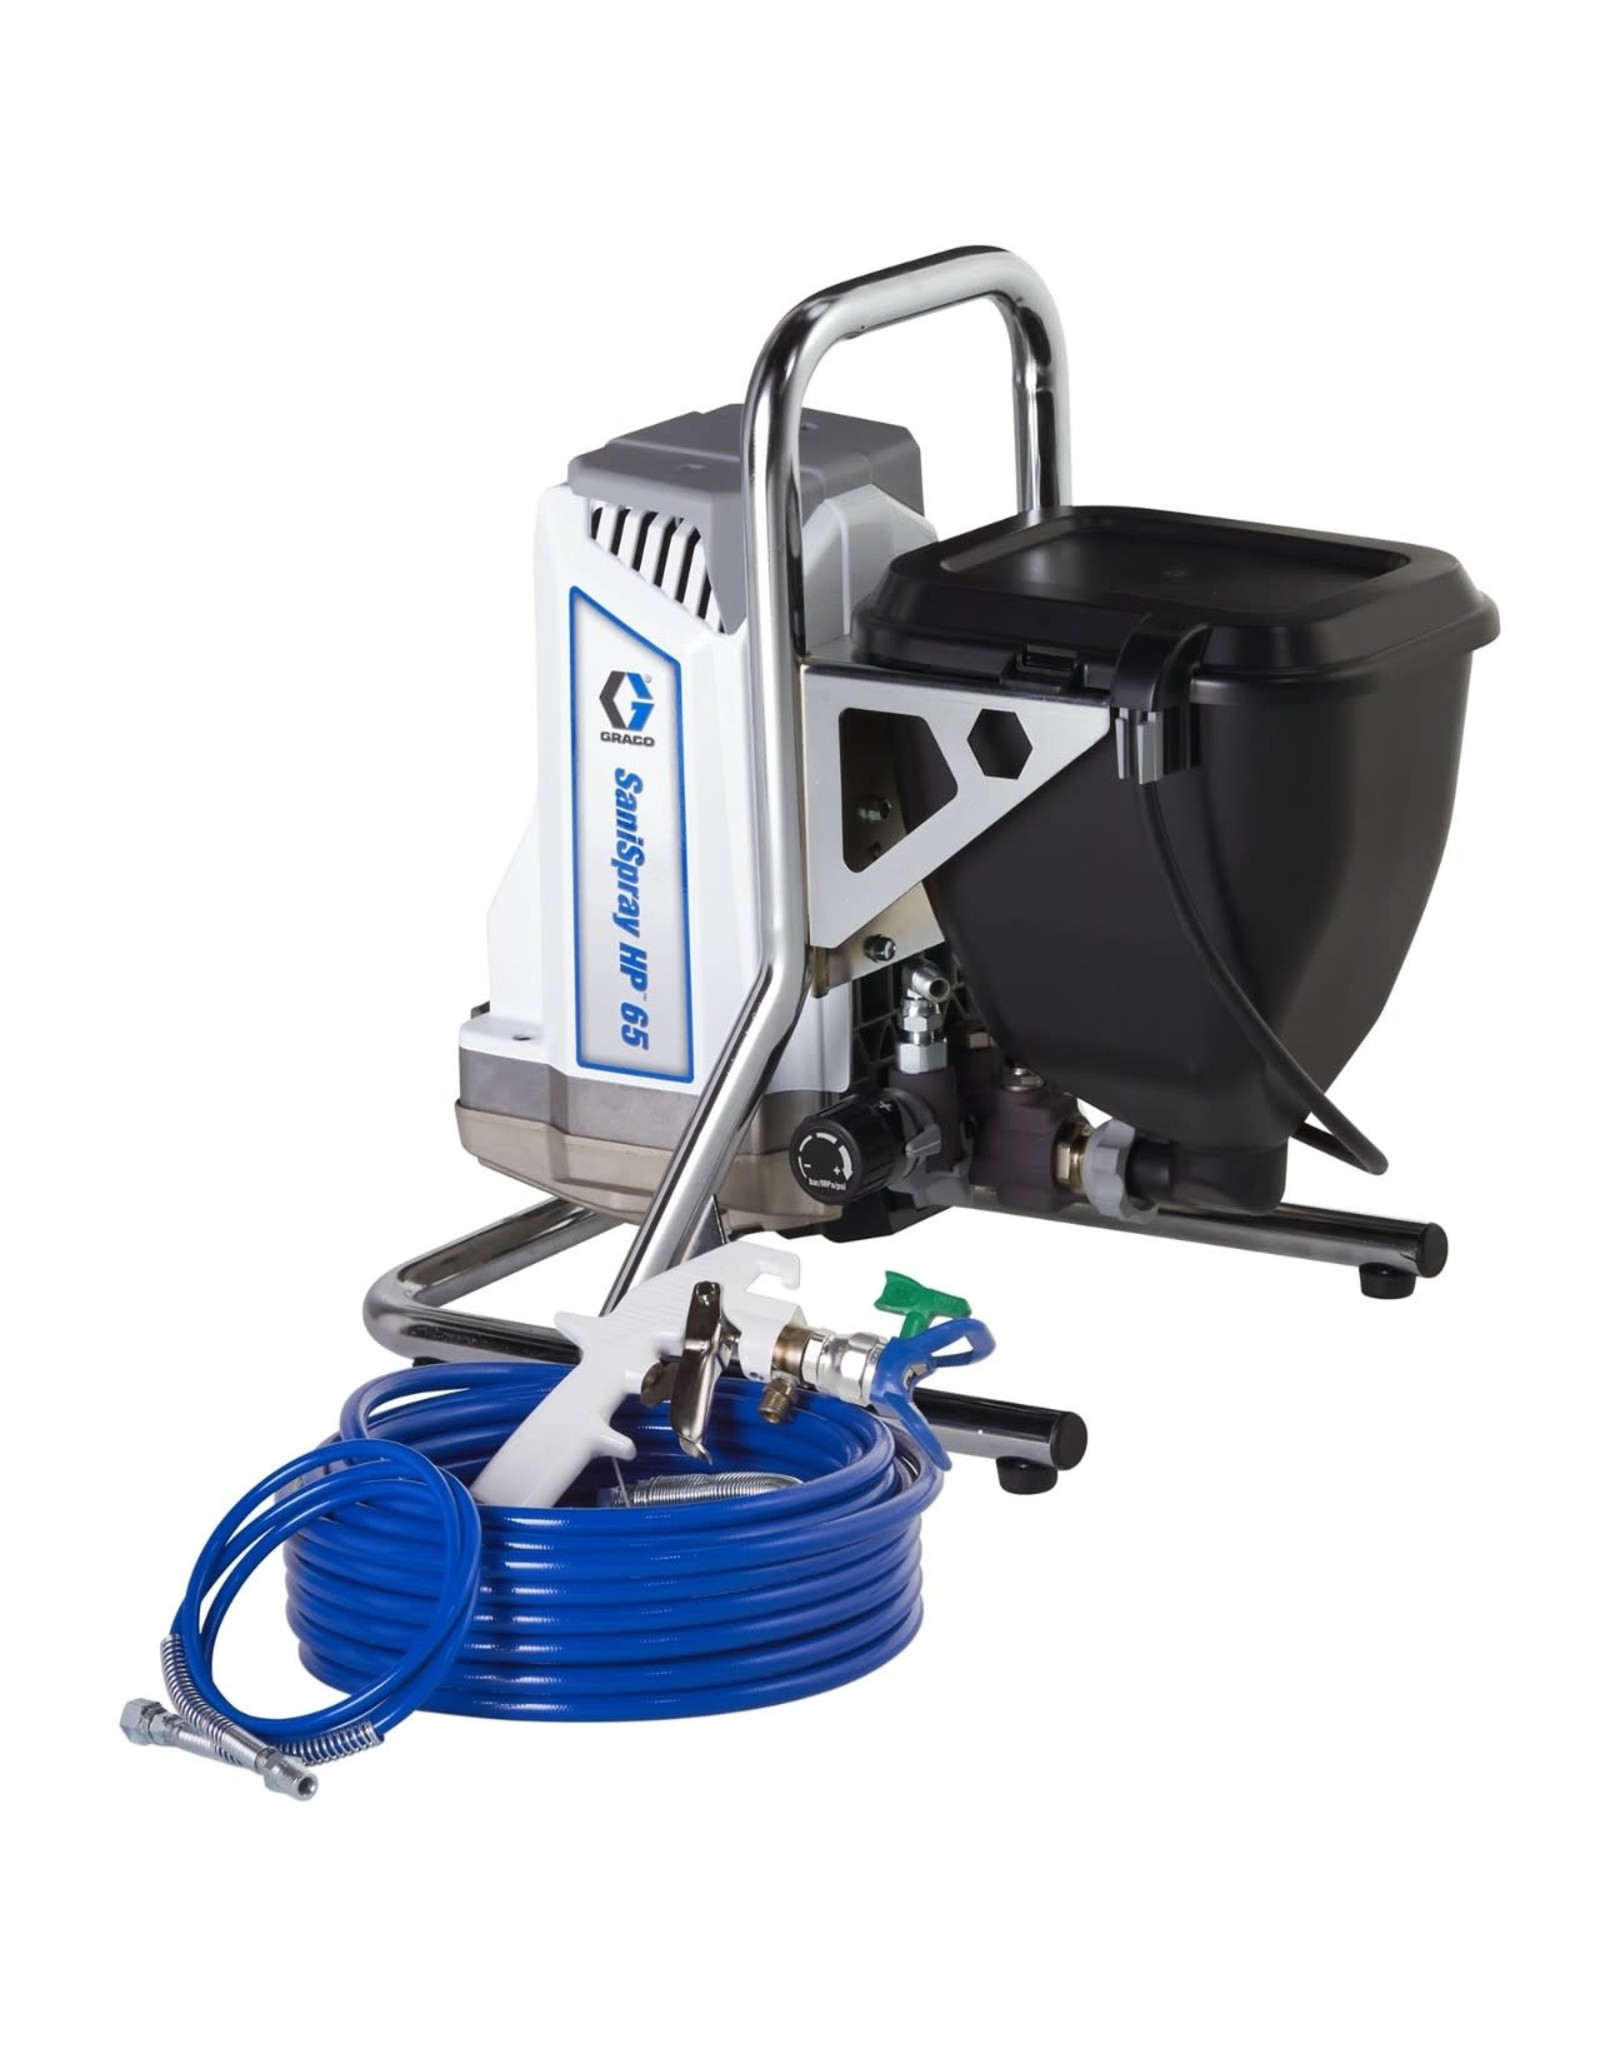 Graco 25R792 SaniSpray 65 Complete